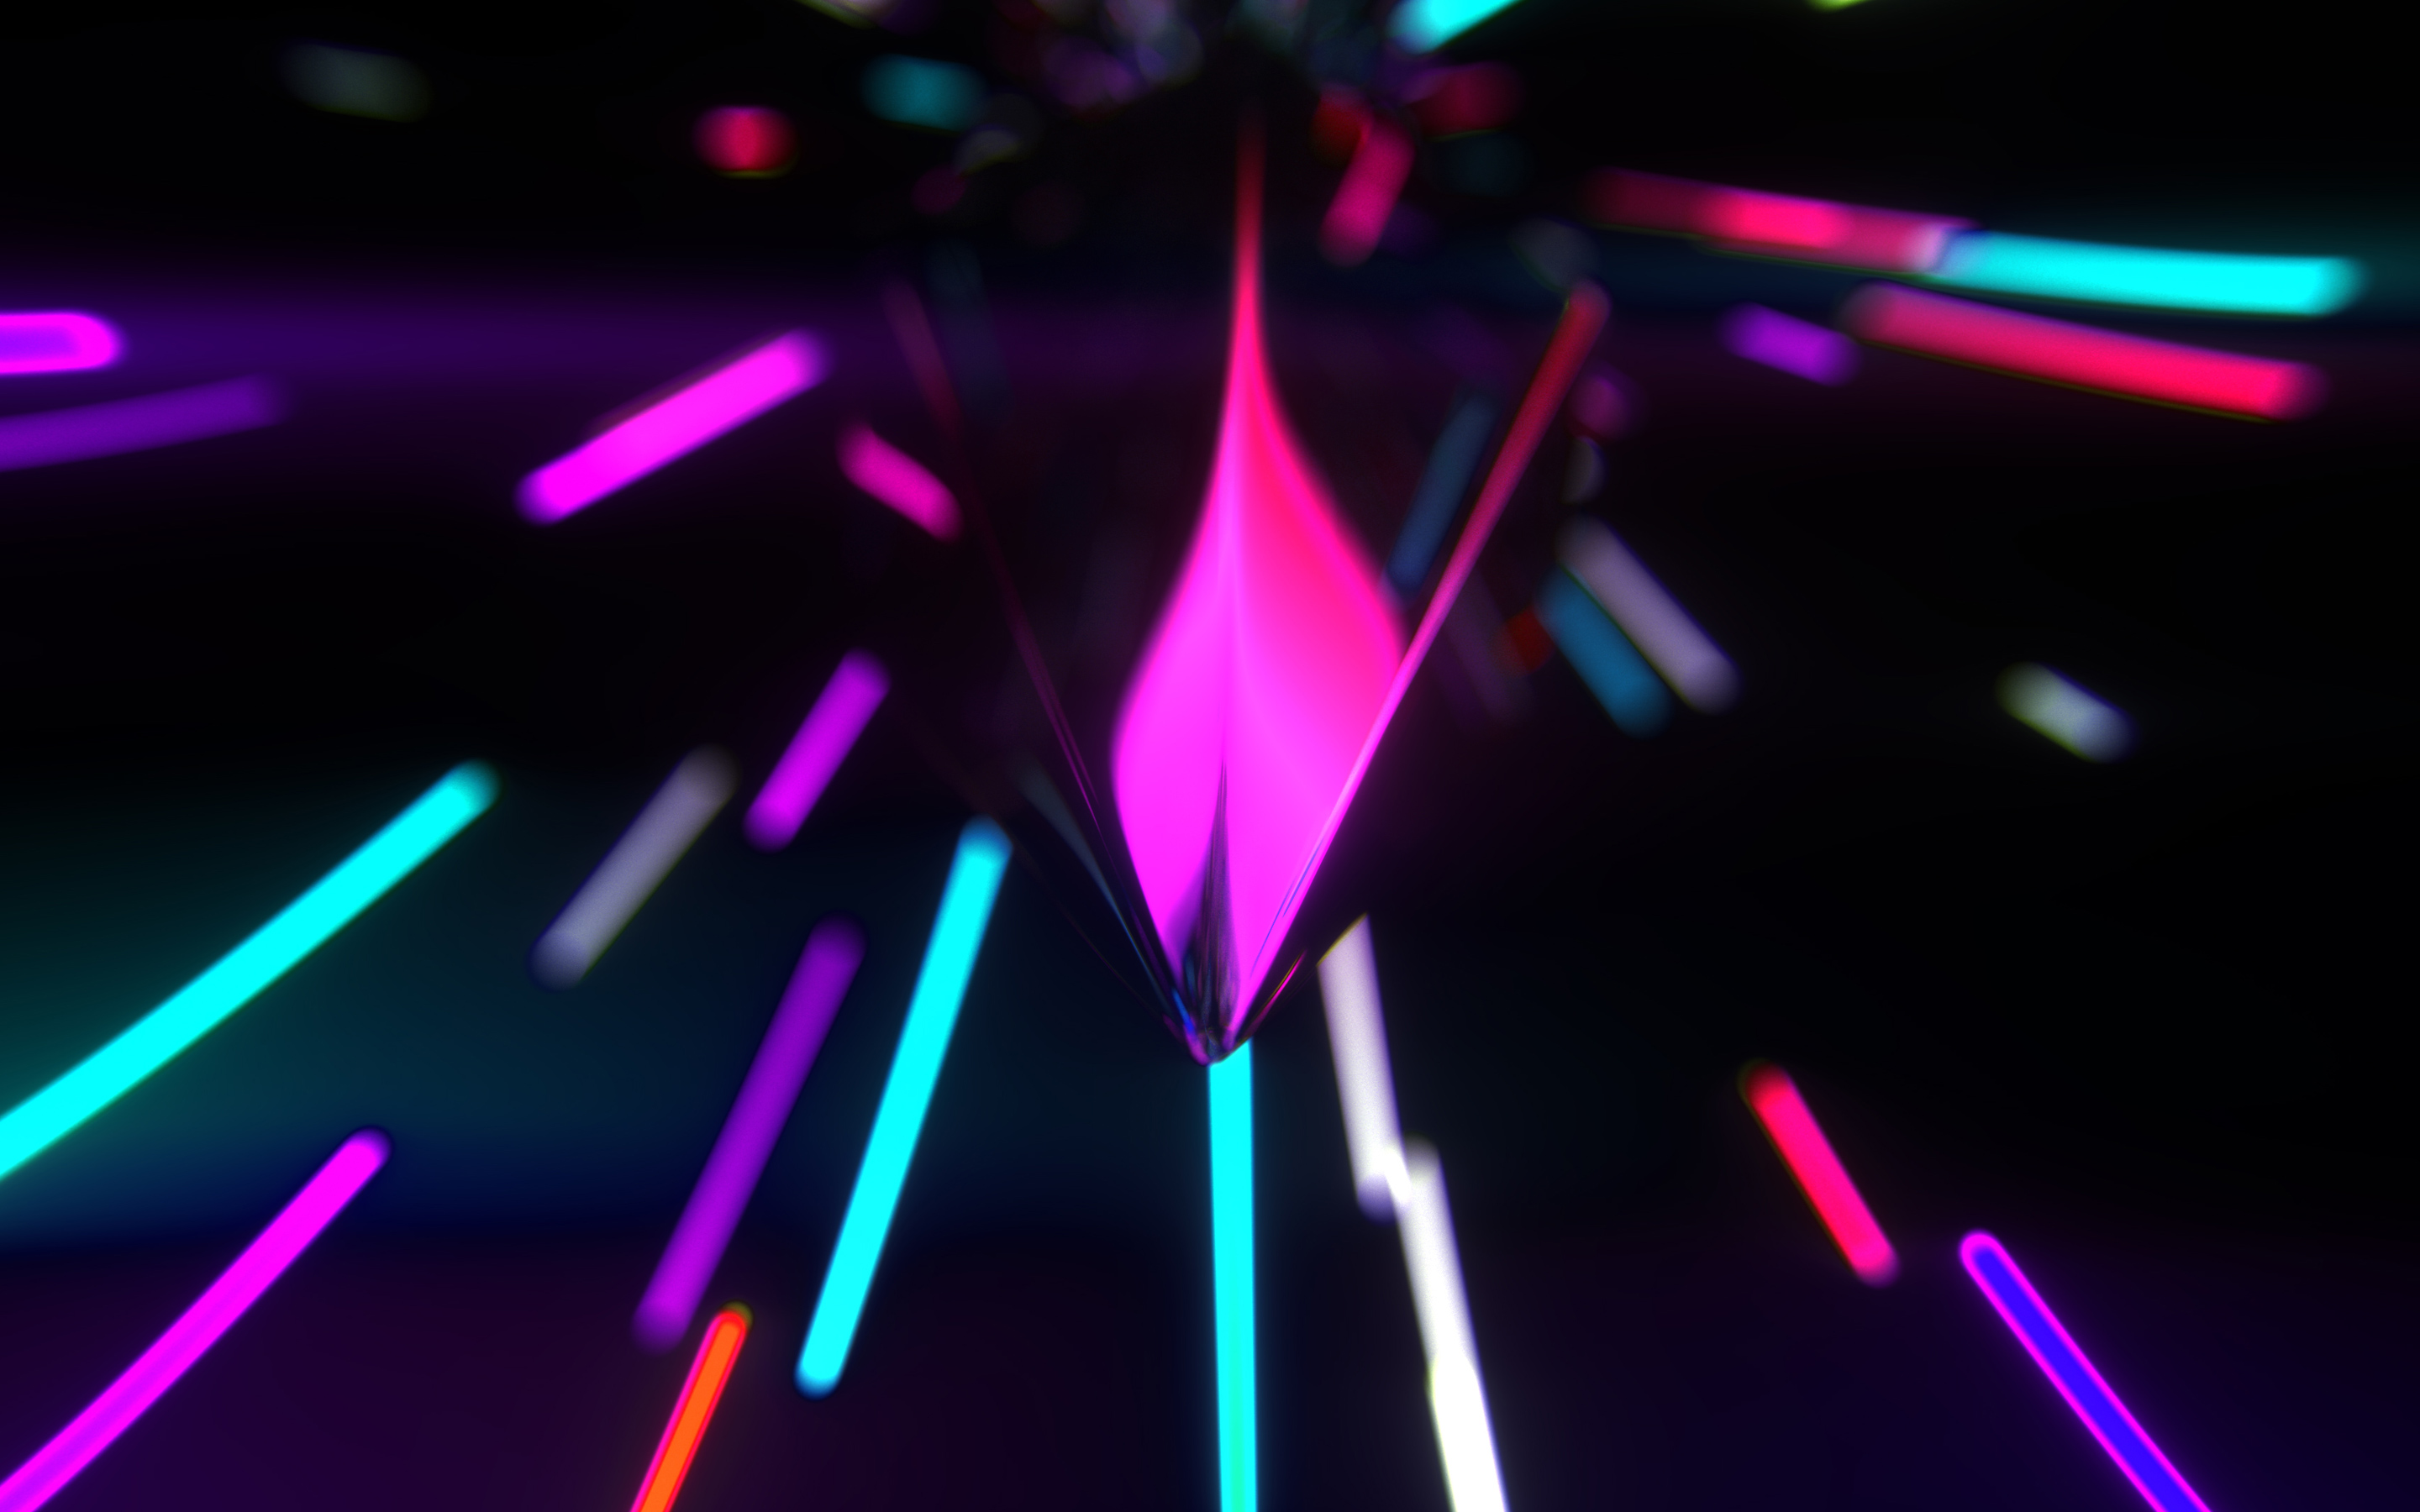 Neon Lights 4K401587980 - Neon Lights 4K - Triangles, Neon, Lights